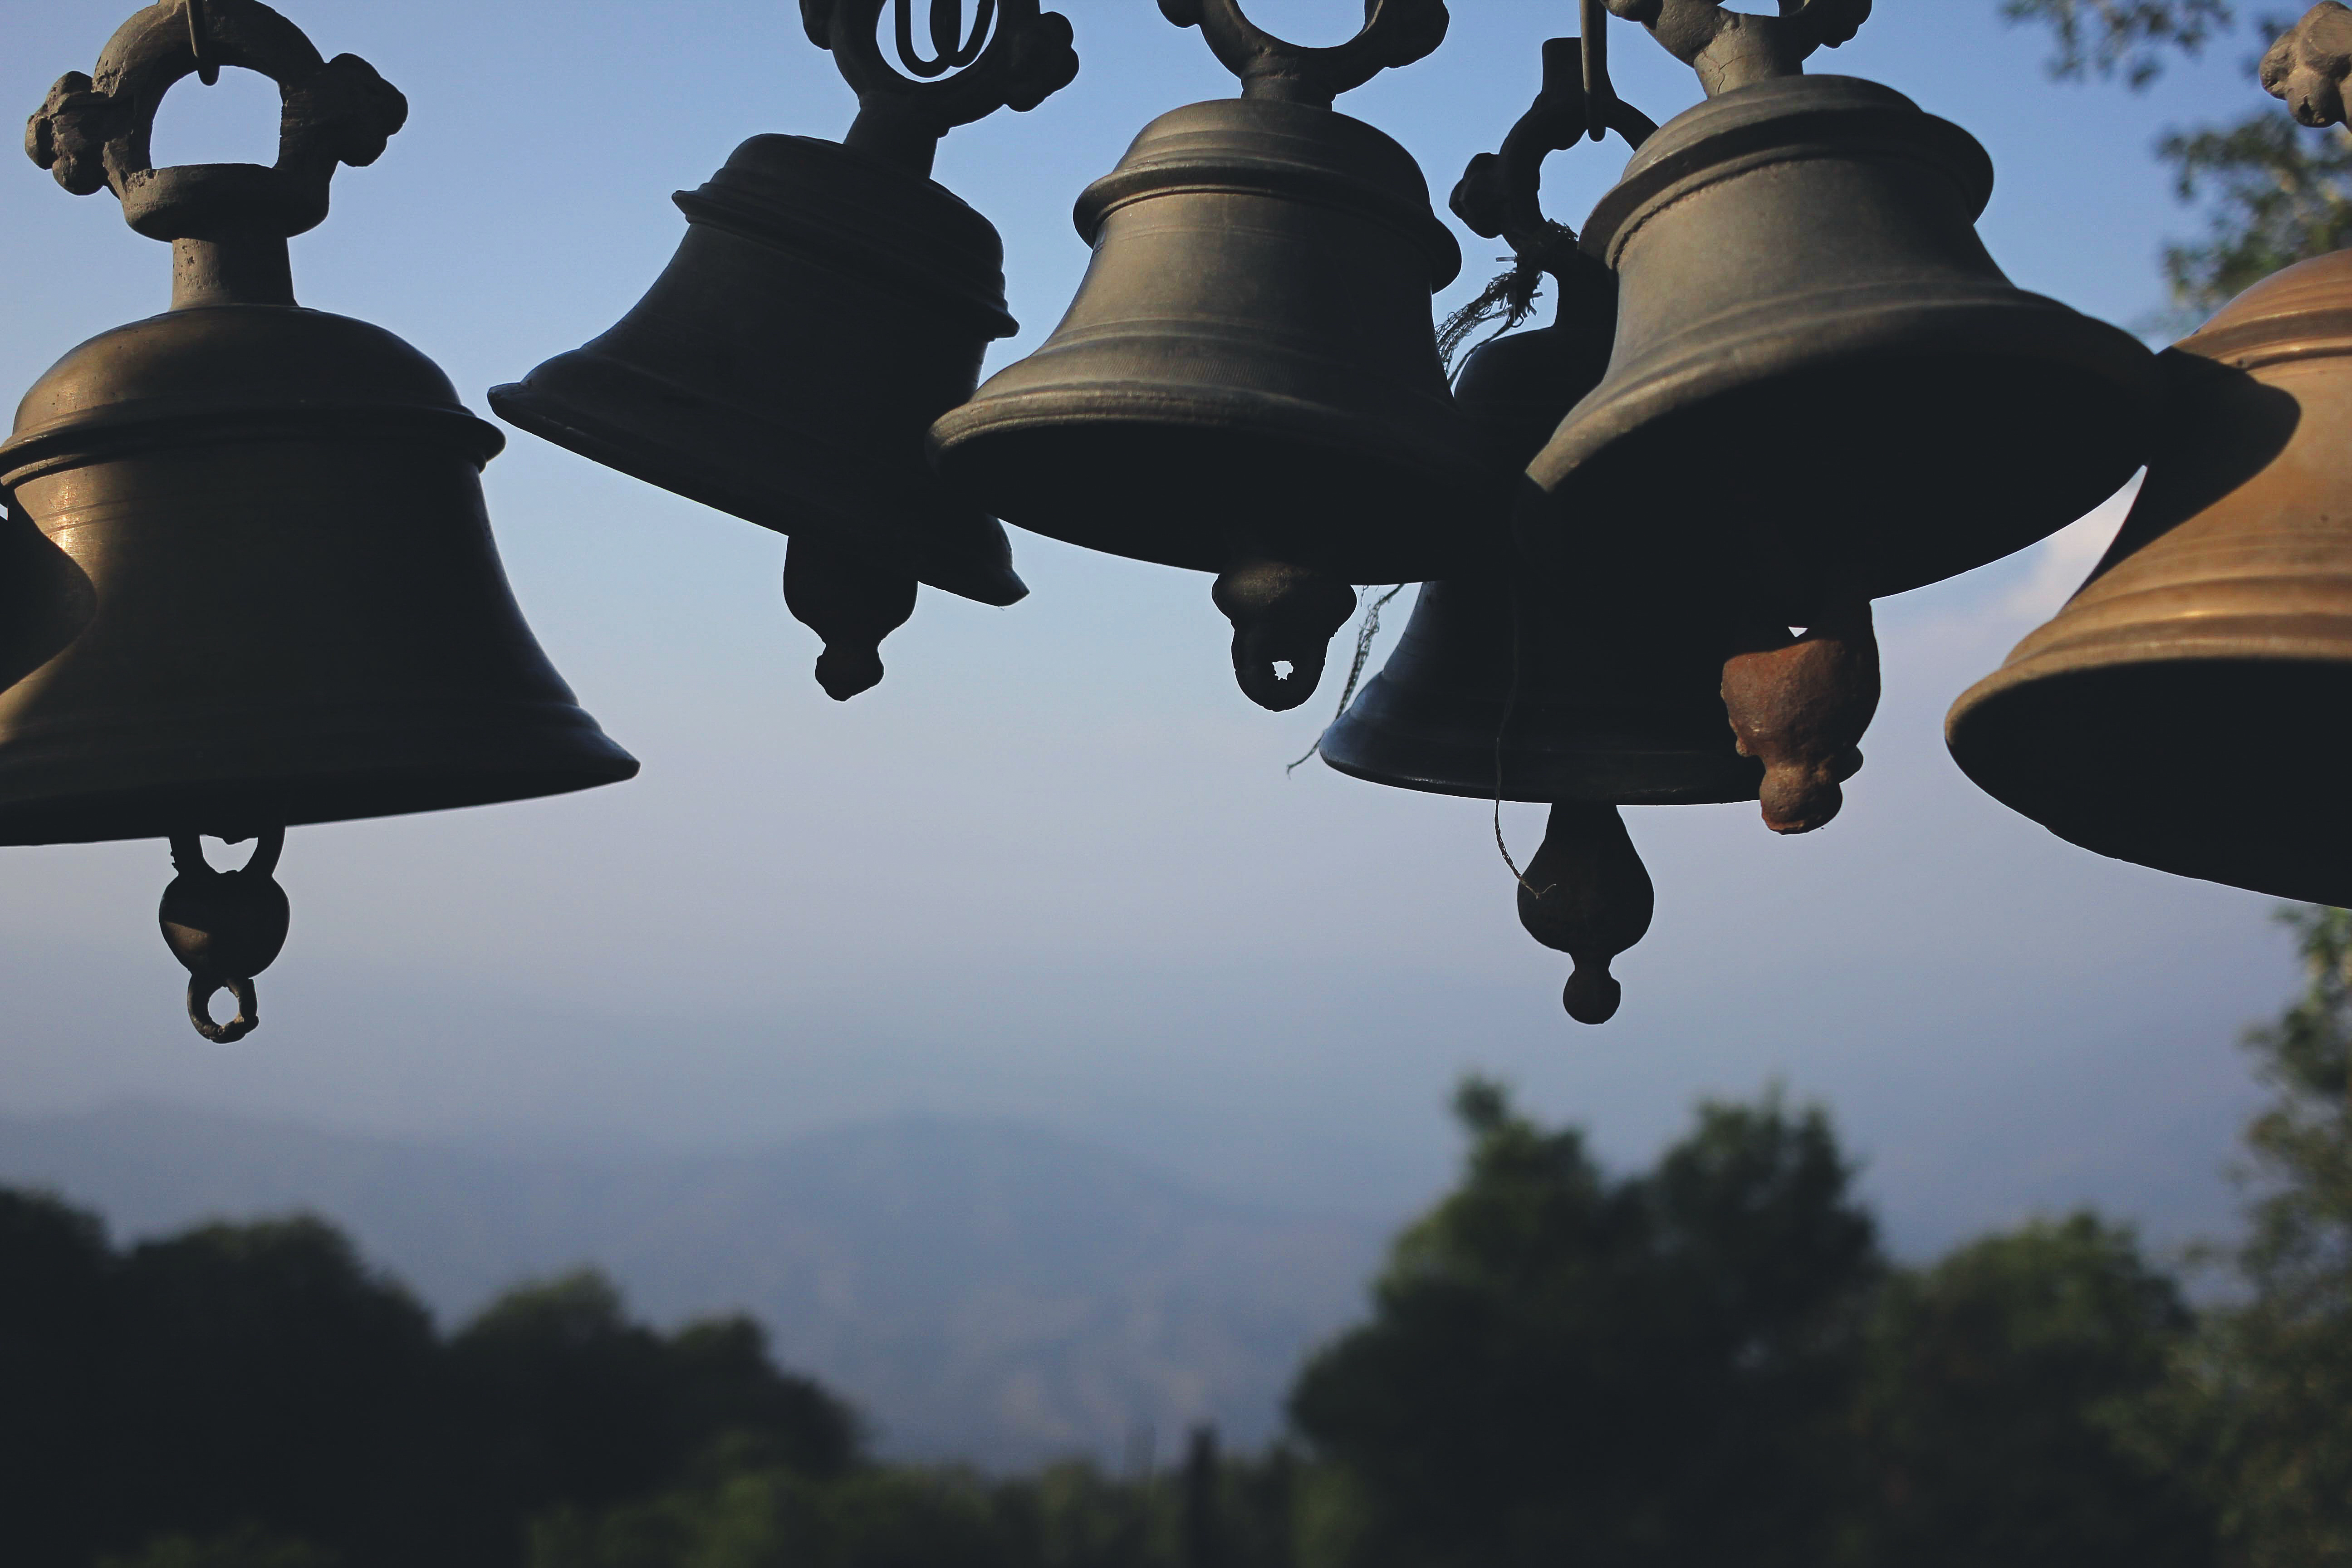 Photography of Black Hanging Bells during Daytime Free Stock Photo